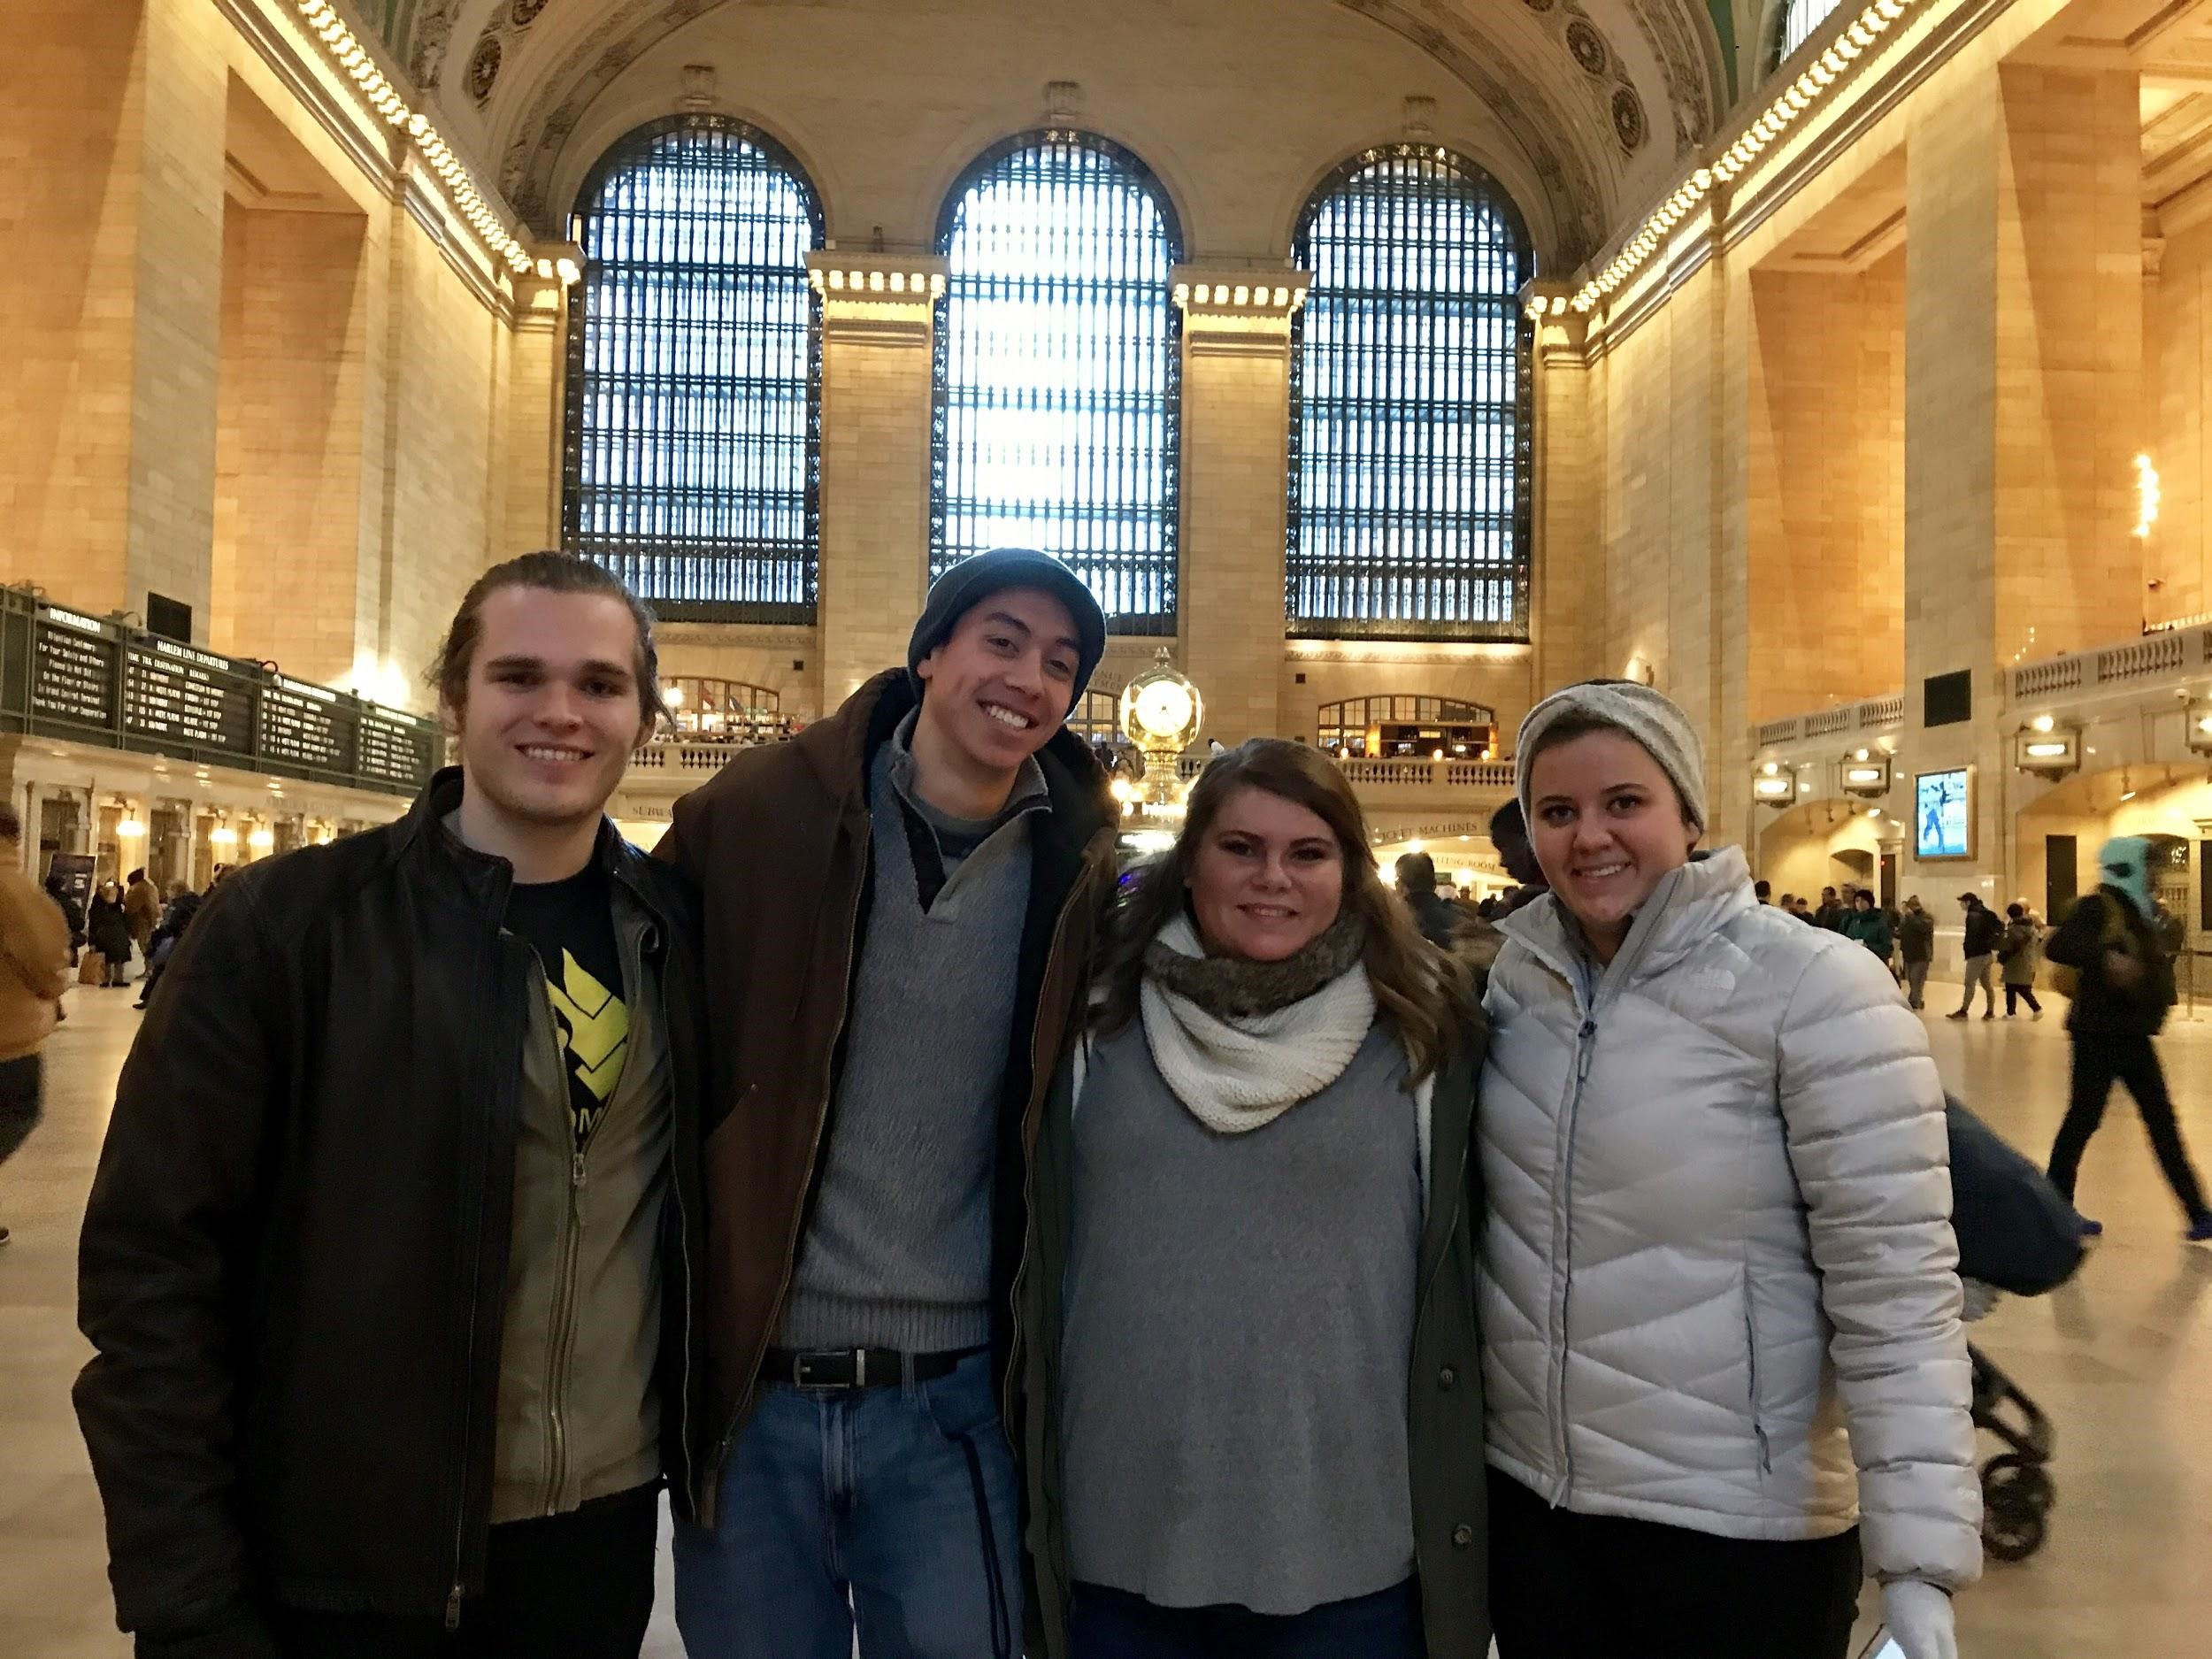 Grand Central Station enroute to Grammys